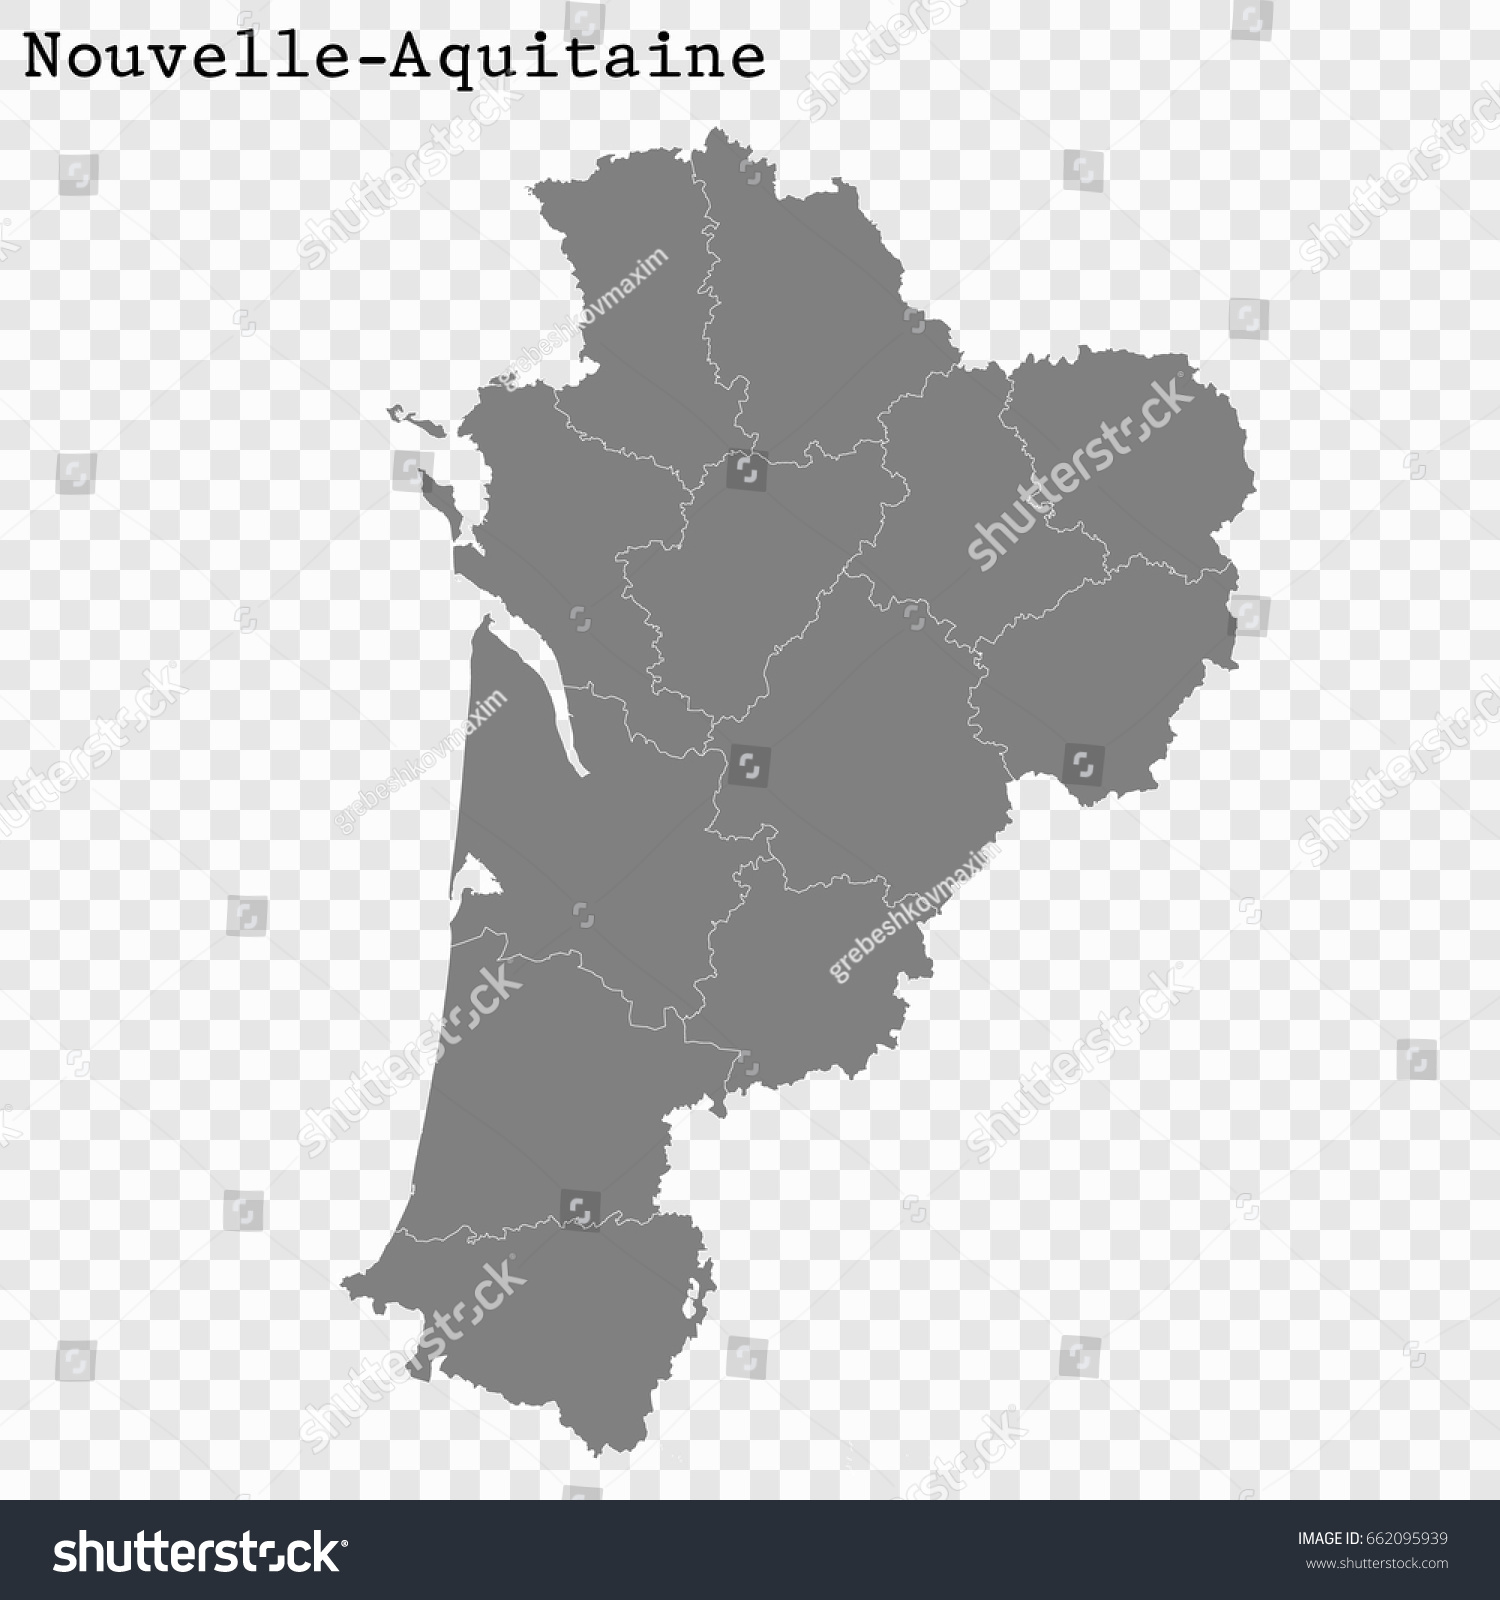 High Quality Map Nouvelleaquitaine Region France Stock Vector